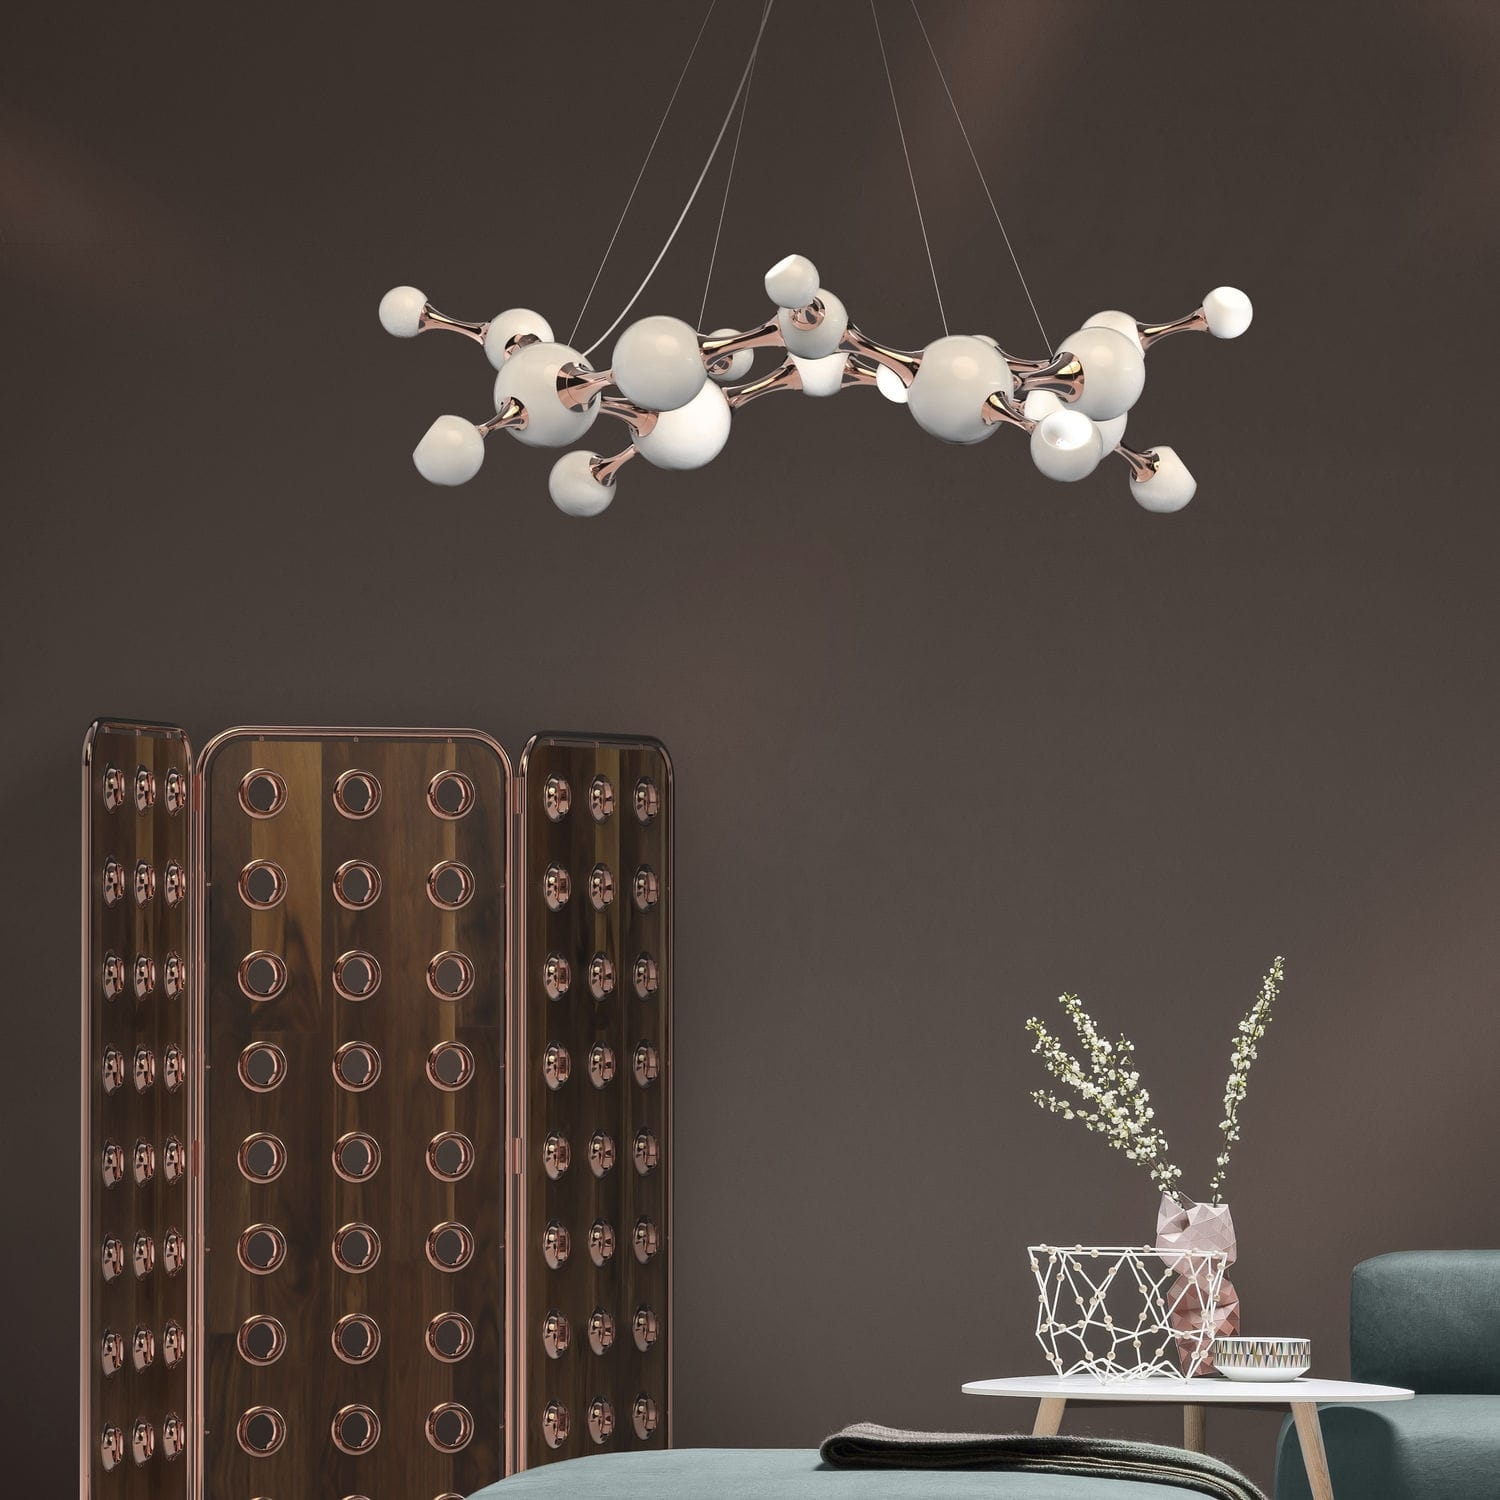 Original Design Chandelier Brass Steel Atomic Round Regarding Atom Chandeliers (Image 18 of 25)